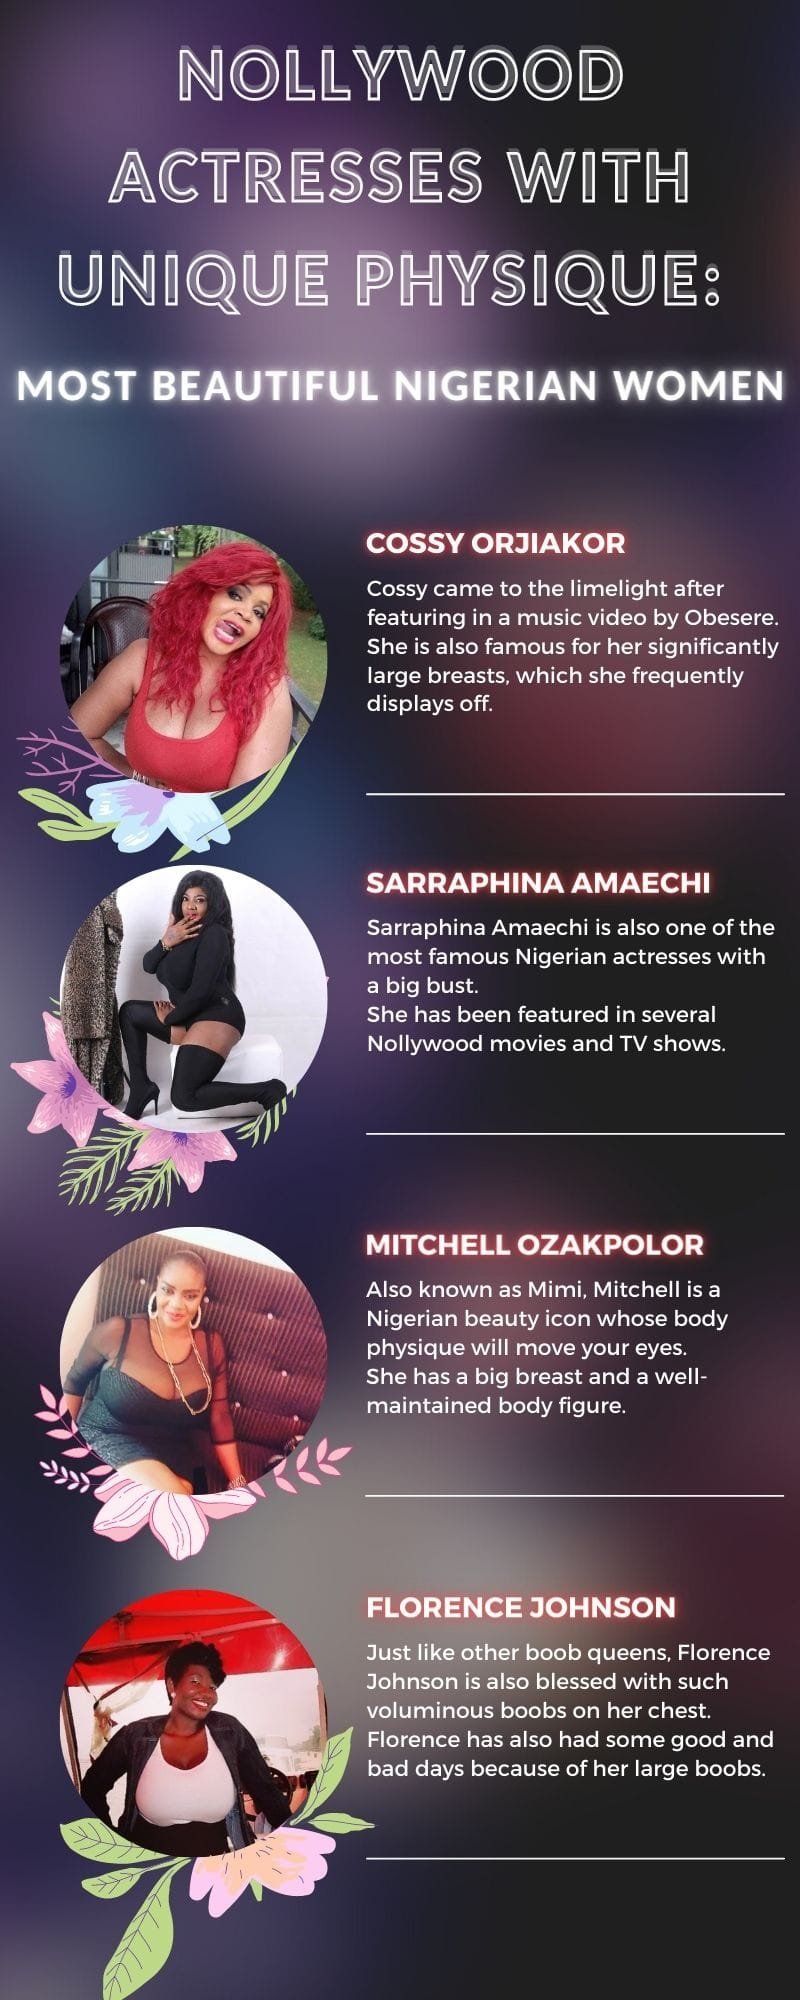 Nollywood actresses with unique physique